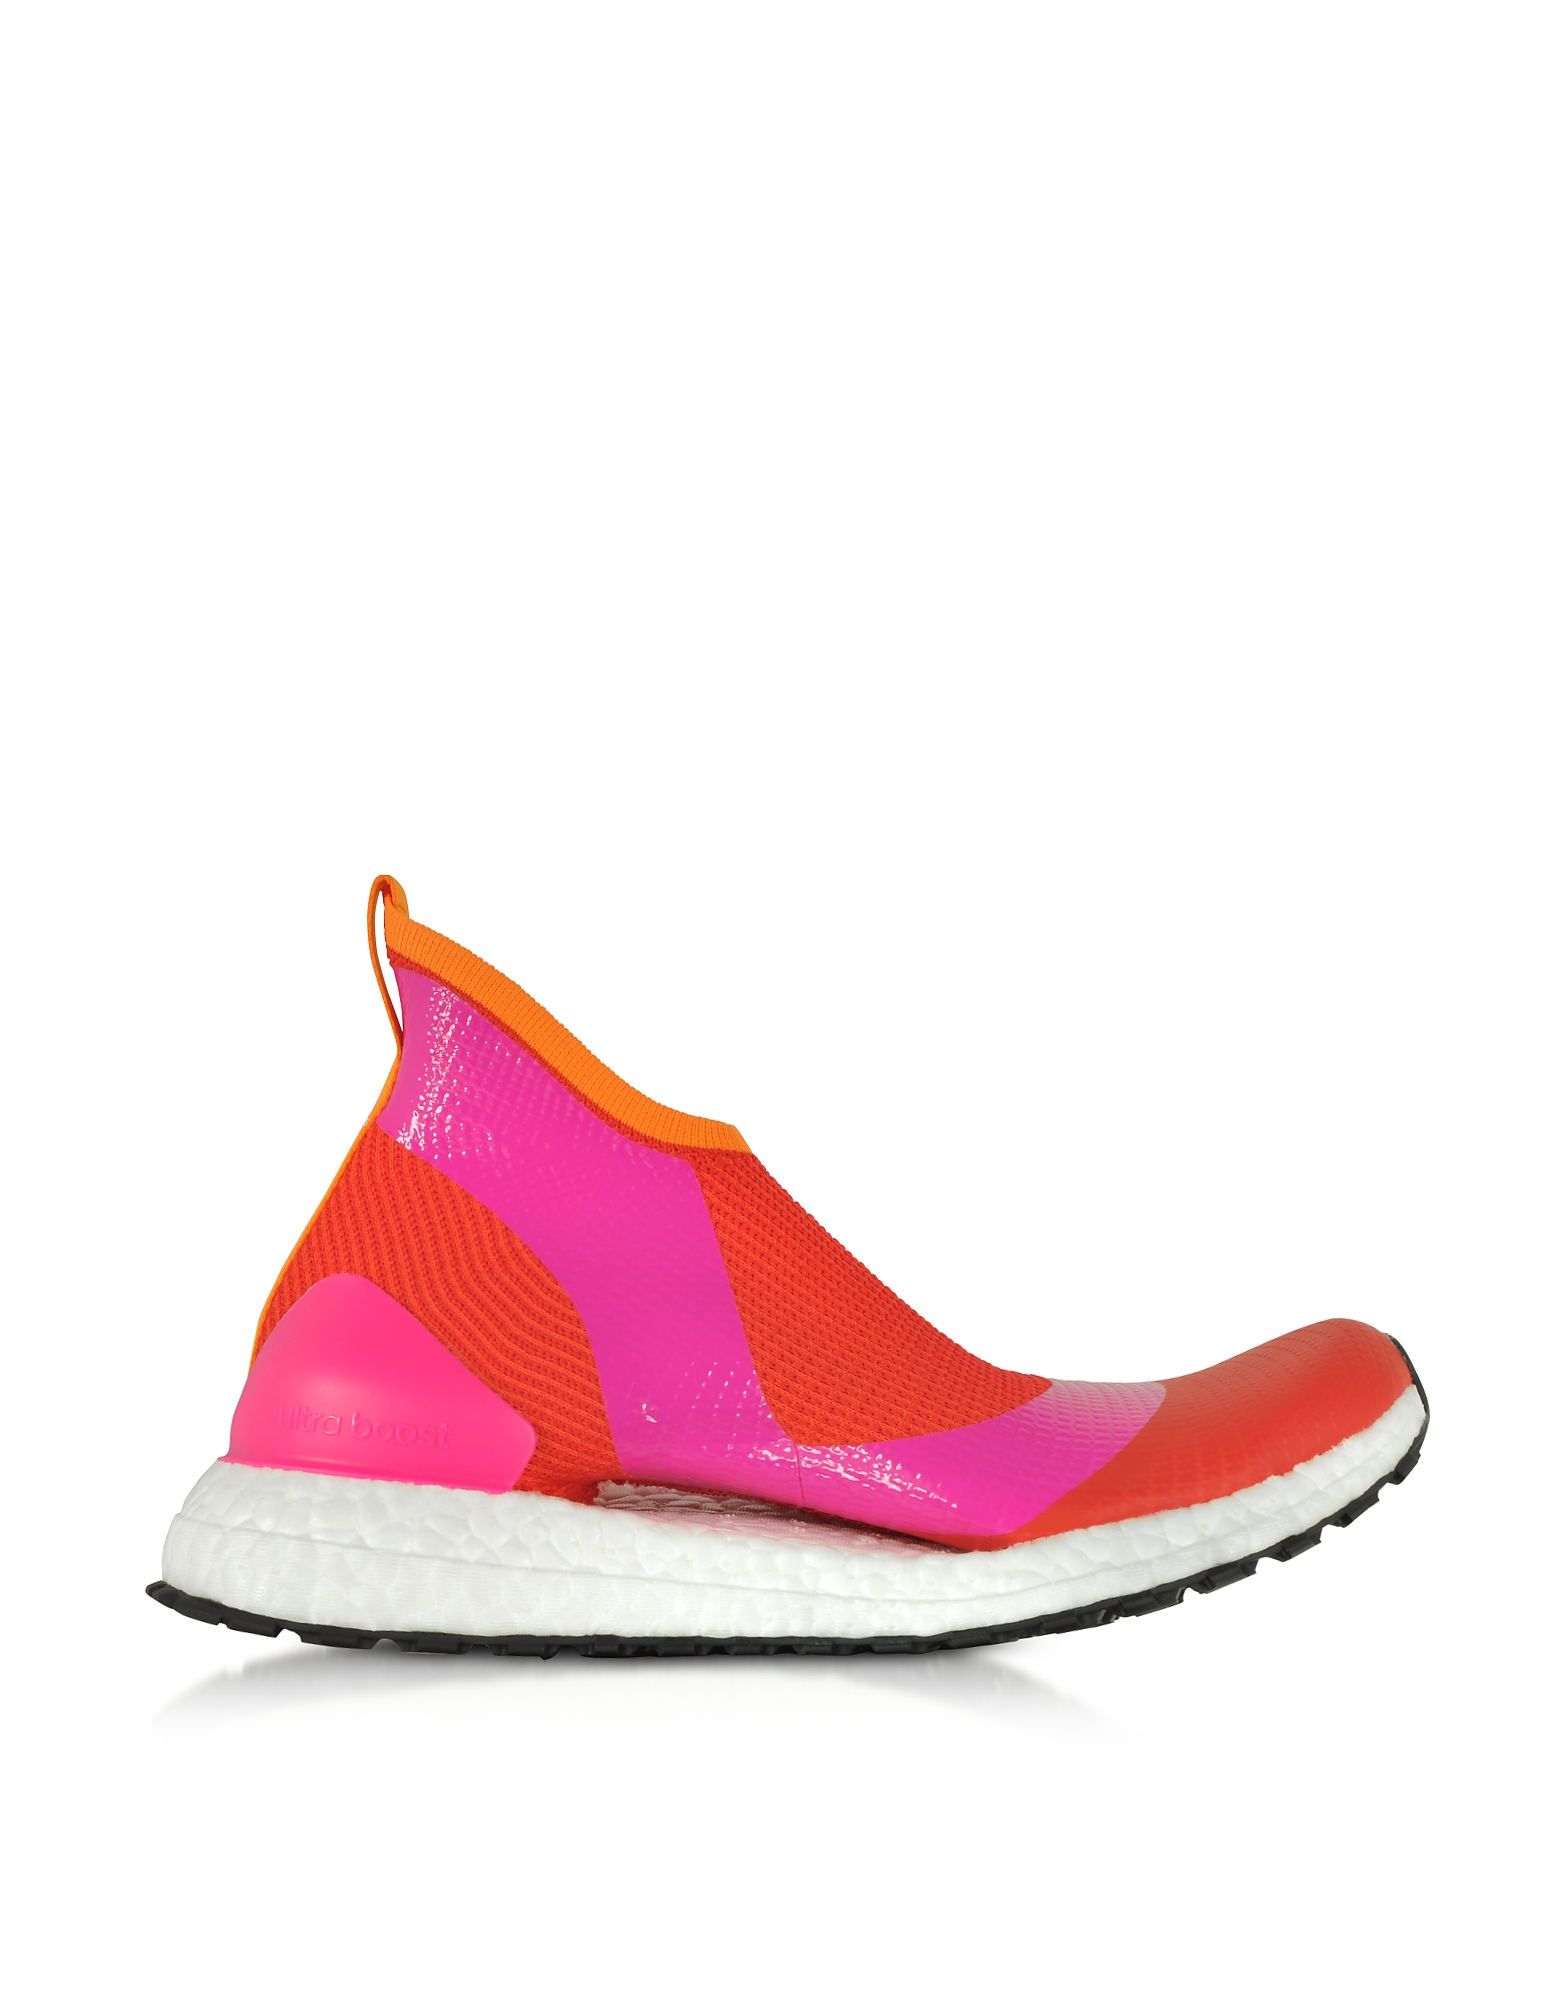 Adidas Stella McCartney Shoes, UltraBOOST X ATR44 Shock Pink Women's Sneakers